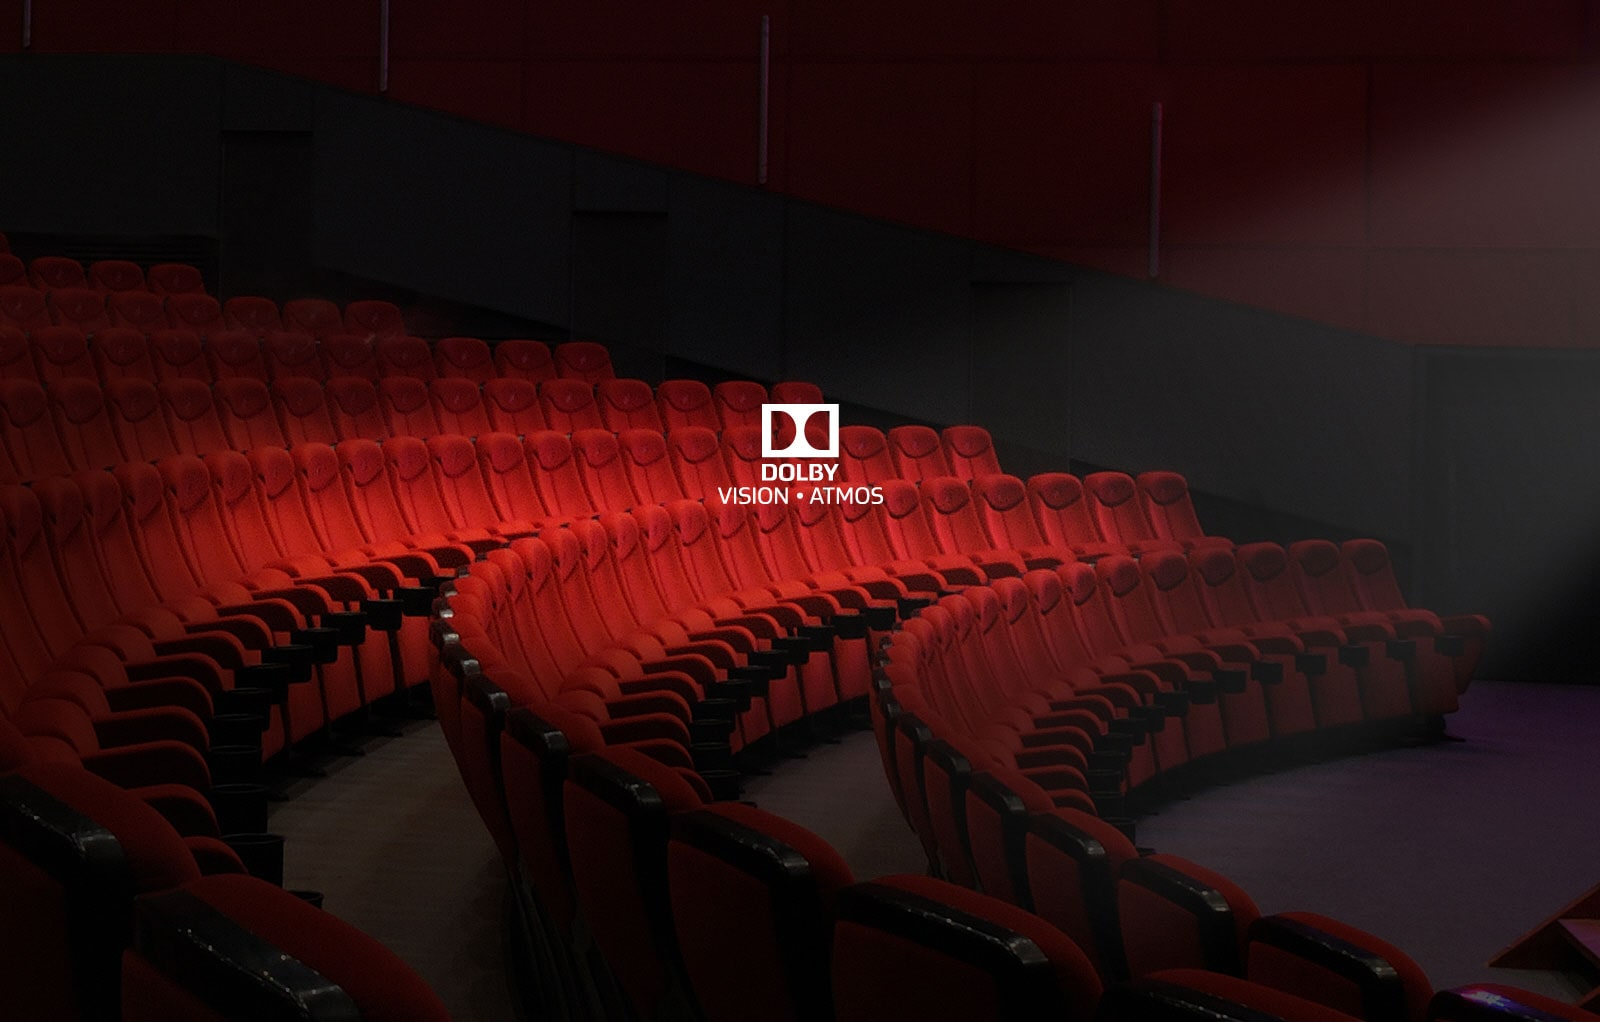 The premium cinema experience, created just for you